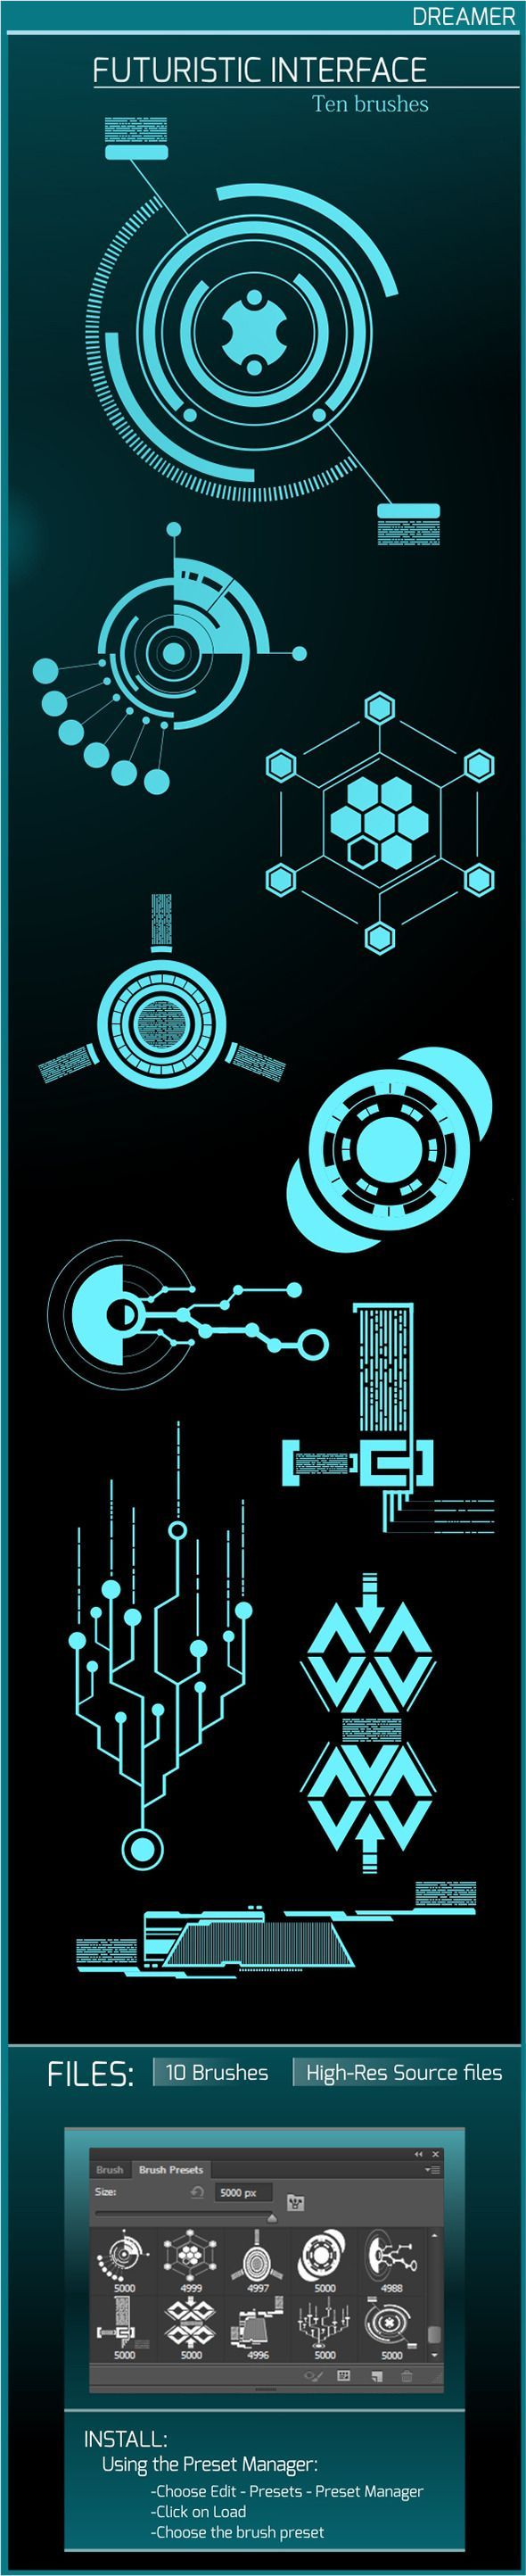 Futuristic Interface – Ten Brushes Photoshop #ps #brushes Download: graphicriver.net/…